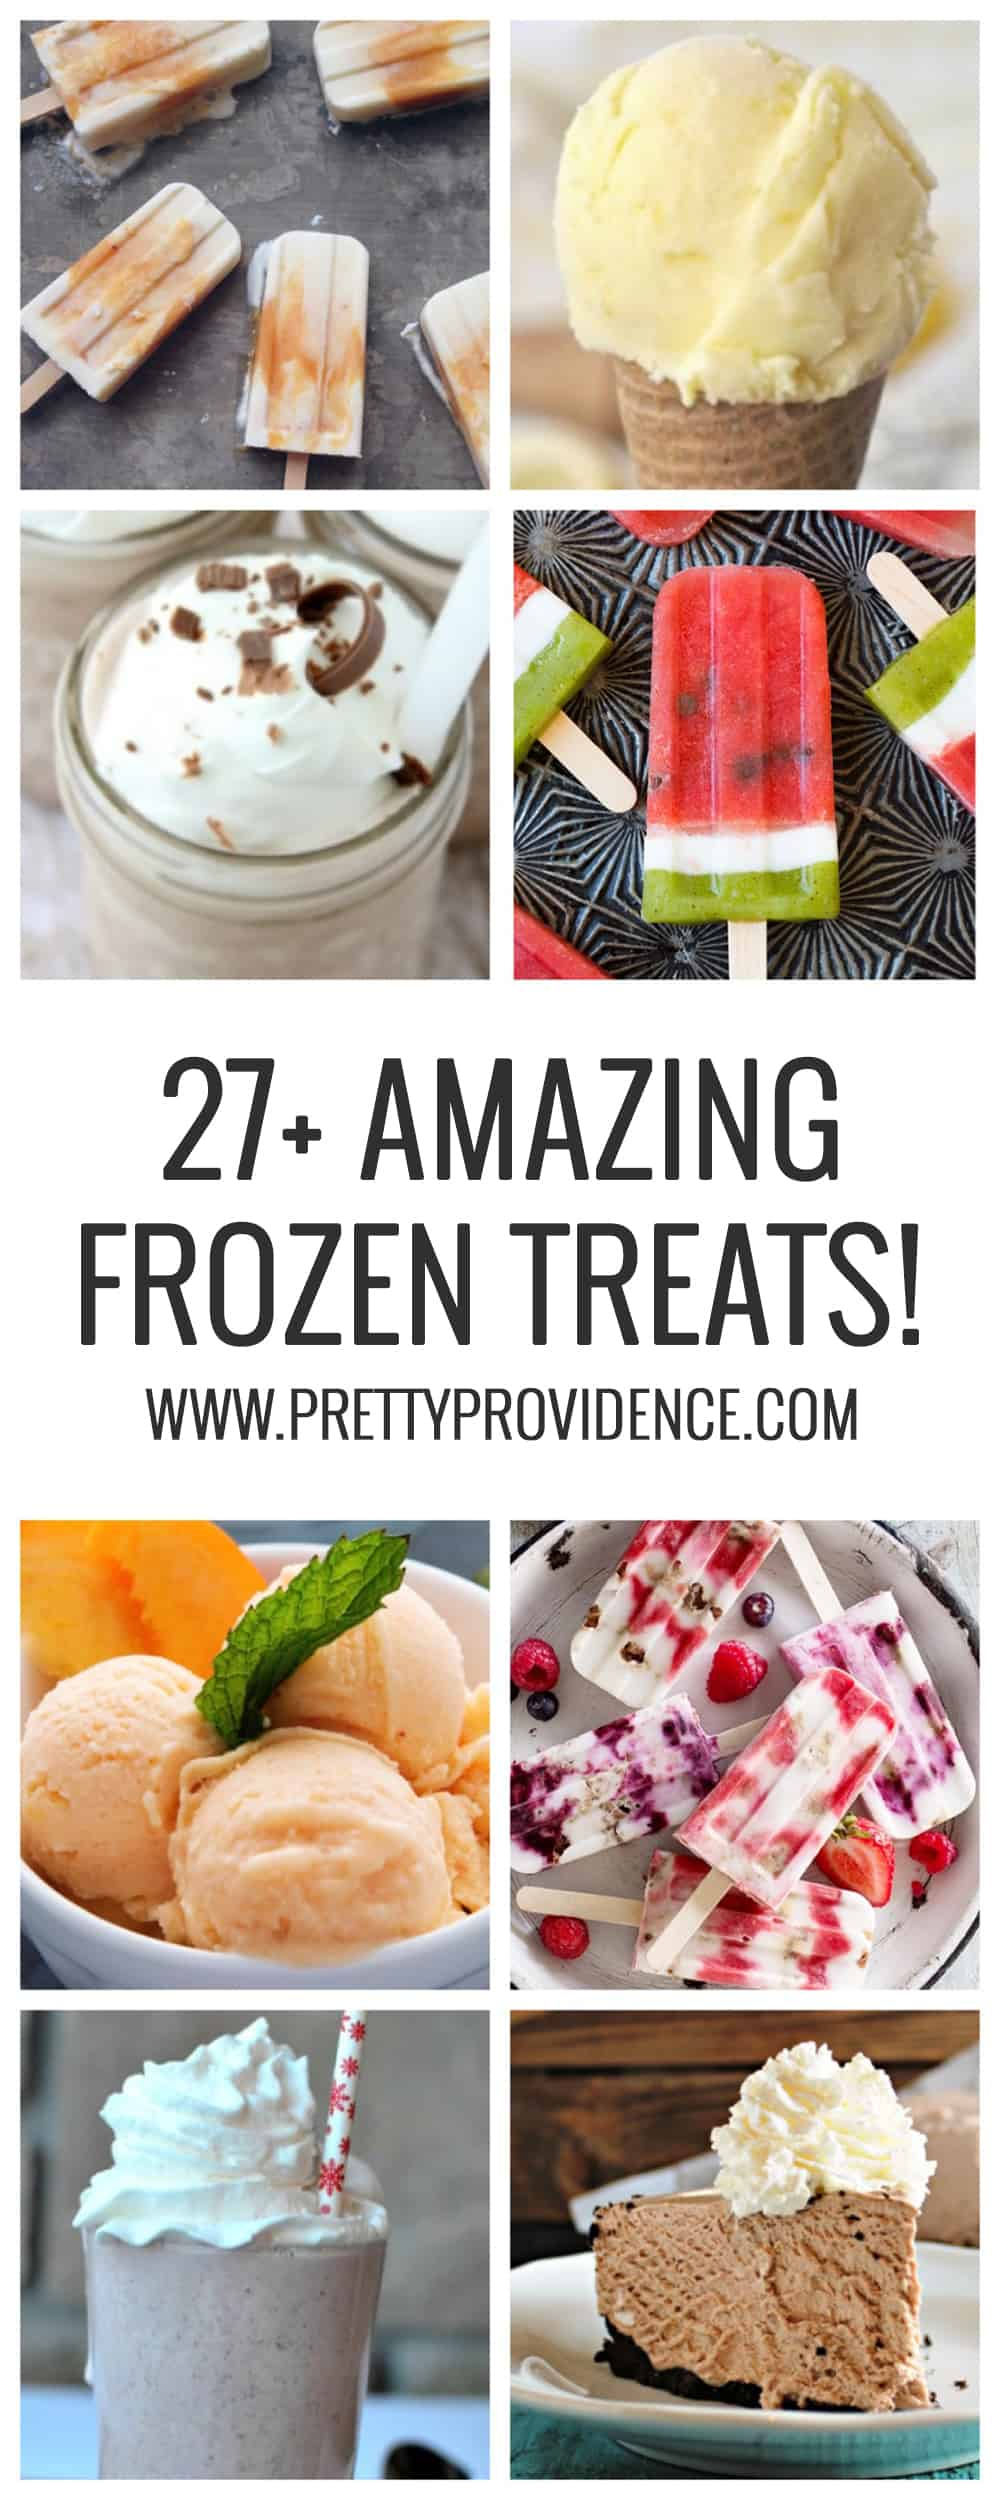 27+ AMAZING FROZEN TREATS to help you beat the heat this summer! They are all super easy, too!